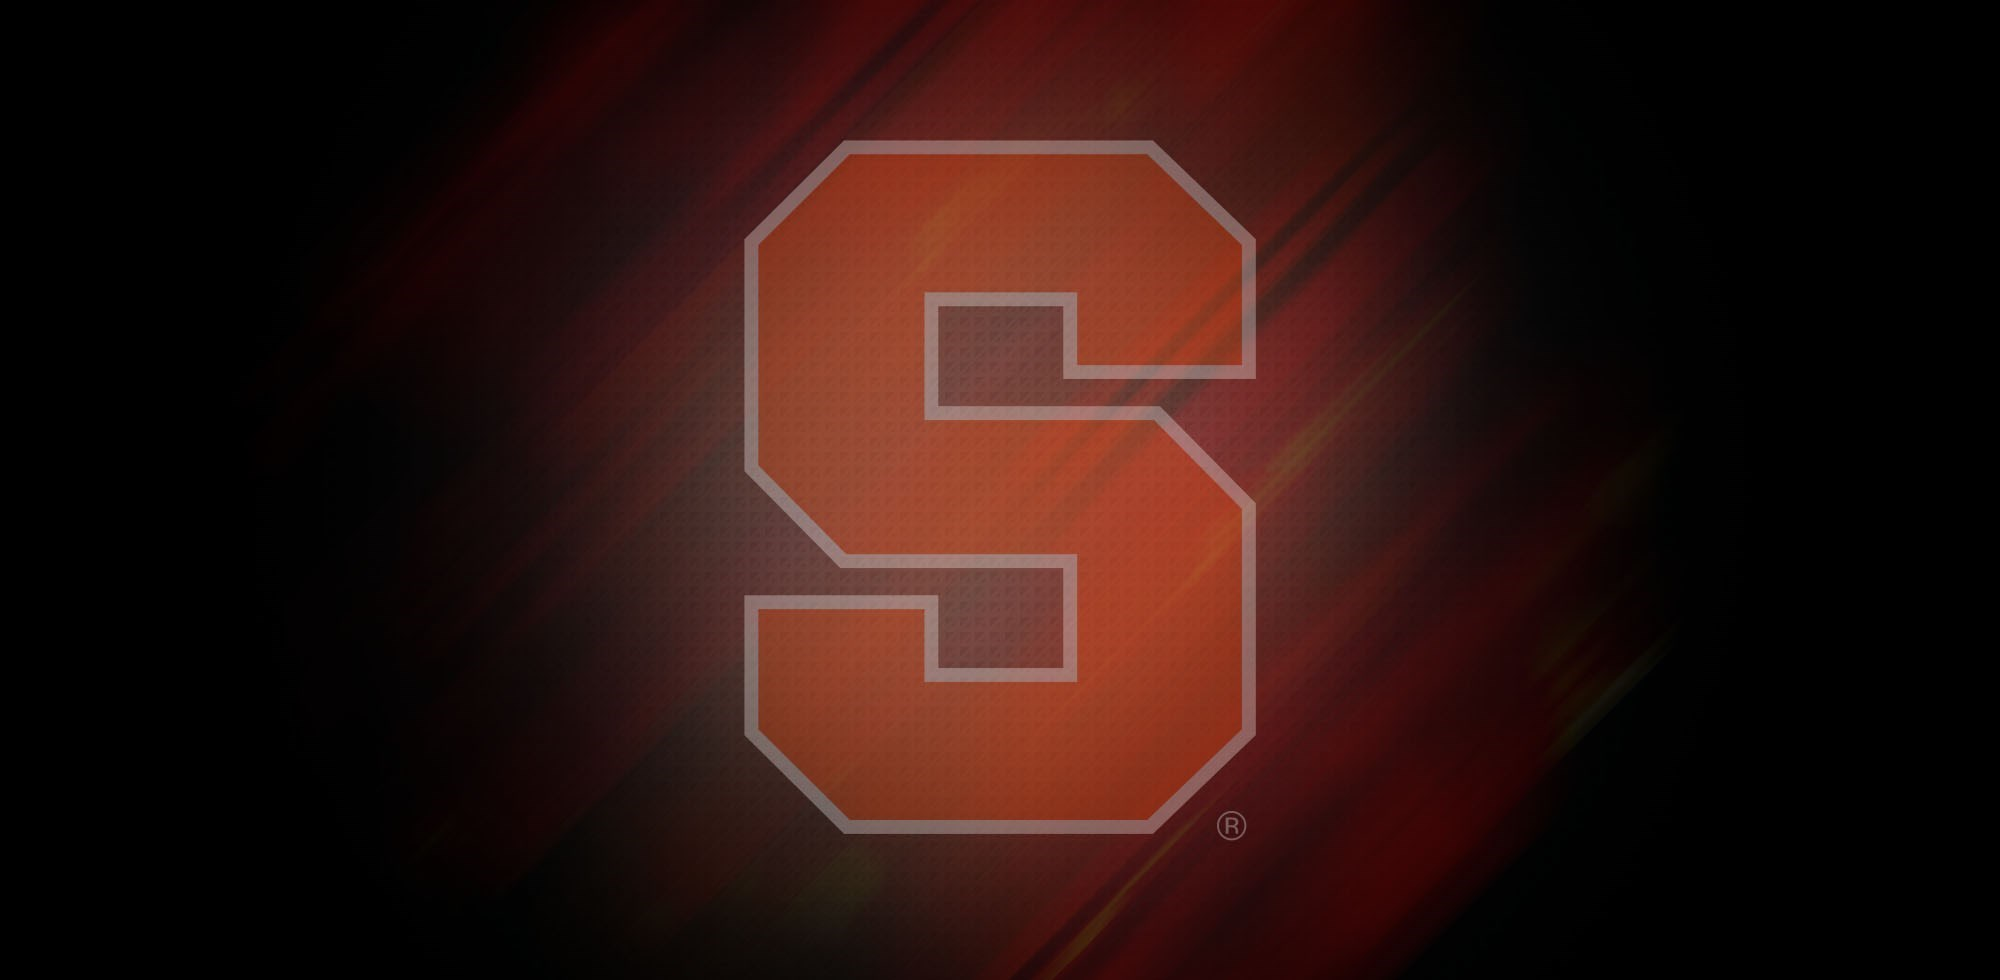 picture relating to Syracuse Basketball Schedule Printable identified as 2018-2019 Syracuse Basketball Program AM 970 The Resolution